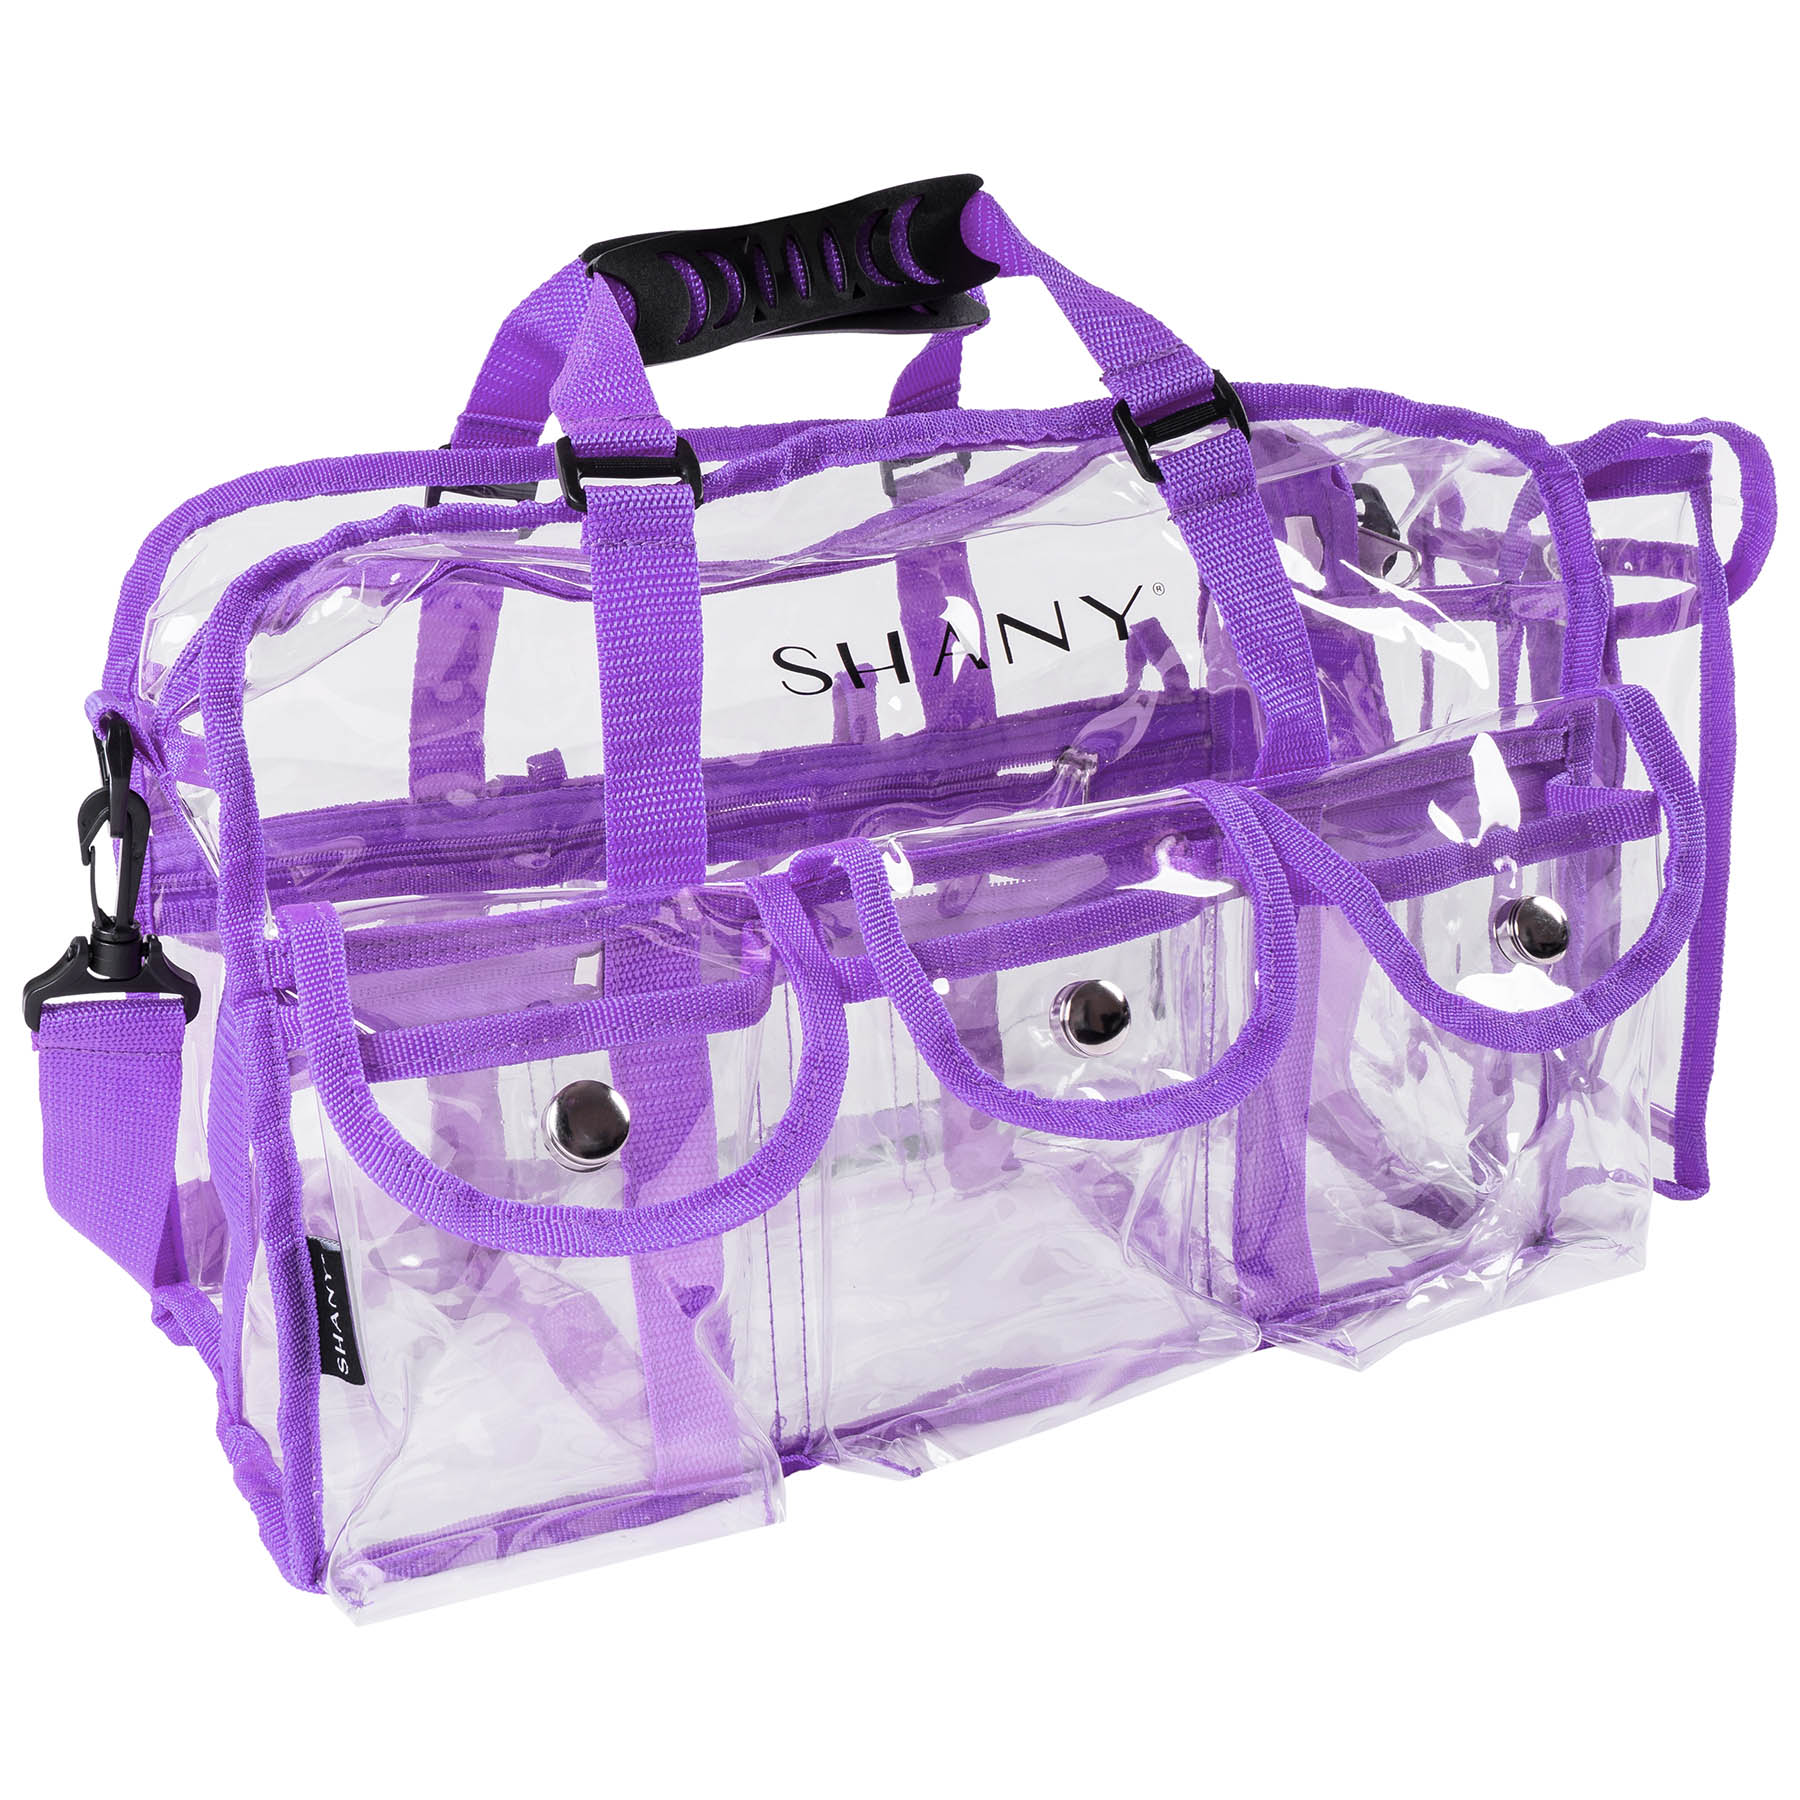 Shany Clear Pvc Makeup Bag Large Professional Artist Rectangular Tote With Shoulder Strap And 5 External Pockets Pink